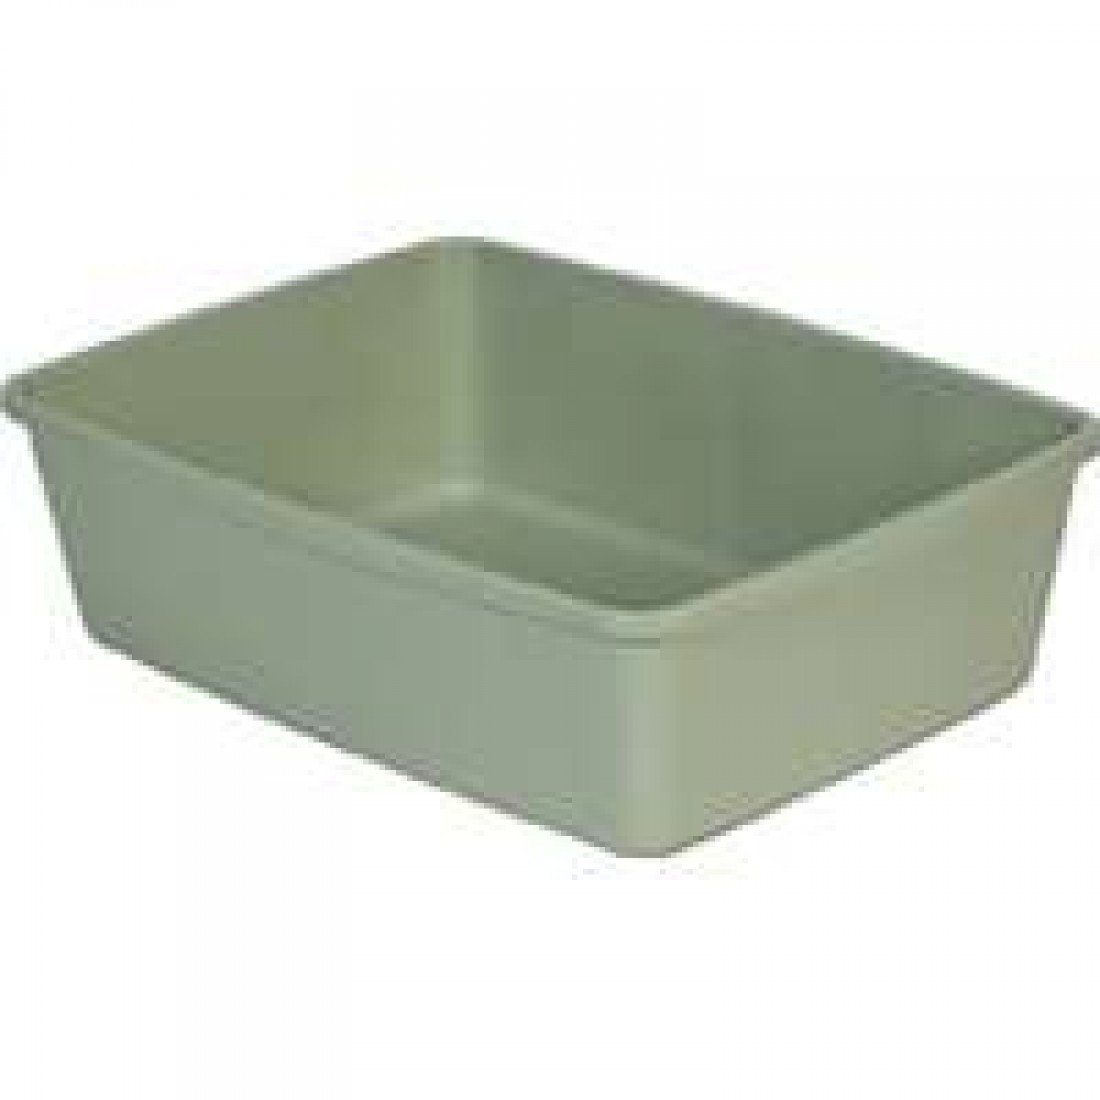 "B0002Y1SJG Doskocil Litter Pan - Large (18 1/2"" long x 15 1/4"" wide x 5 1/4"" high) 51nNyIrxO3L"